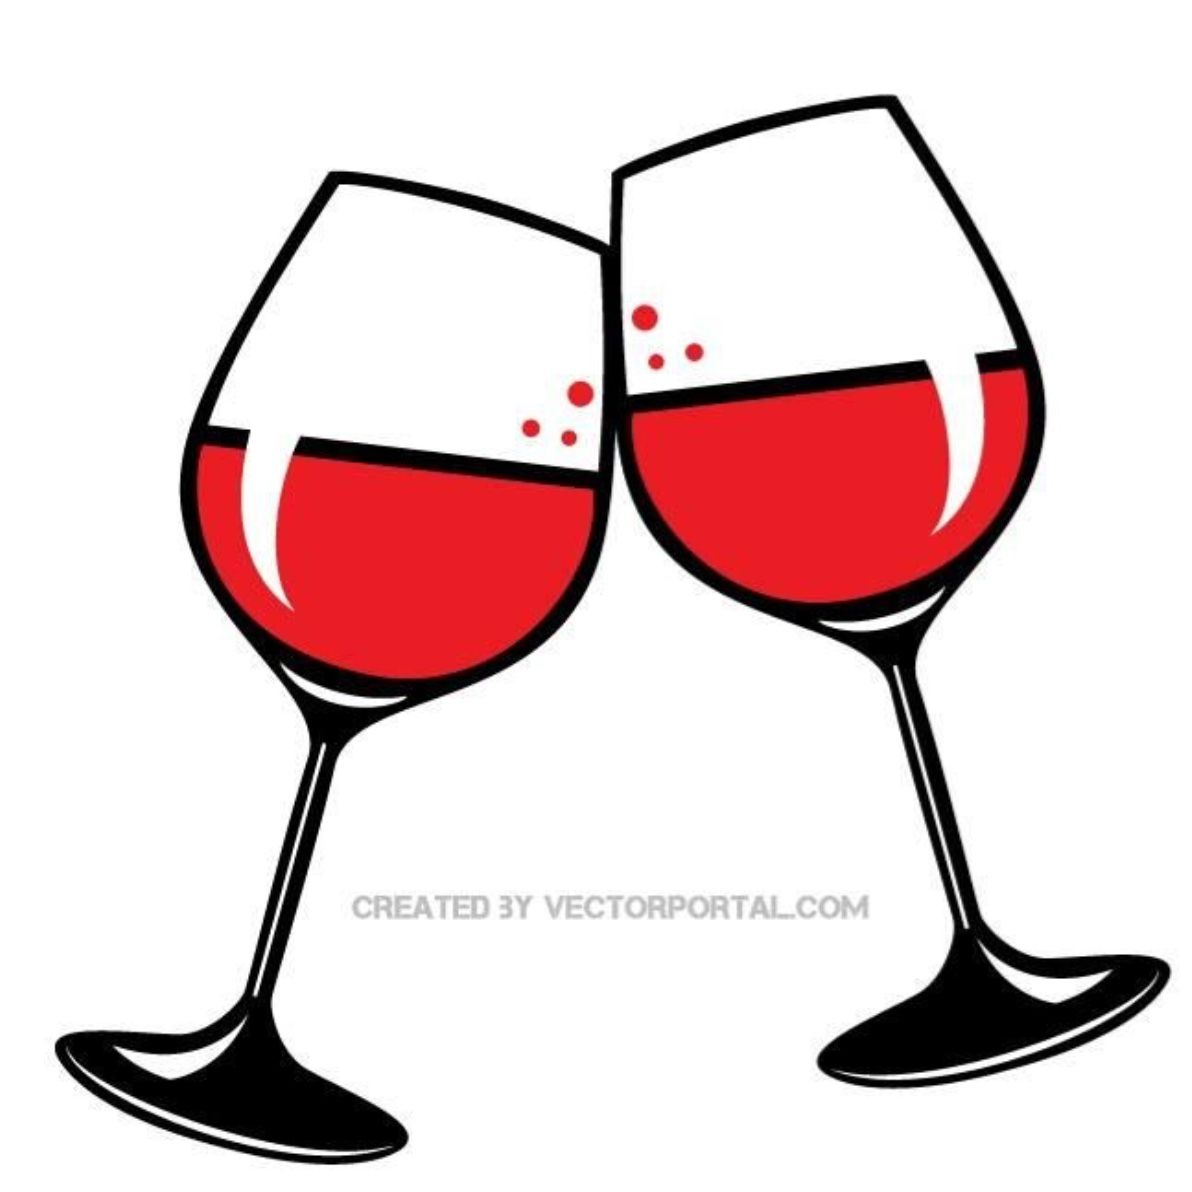 Wineglass clipart free png freeuse stock Pin by Bonnie Haley on Digital Images | Wine glass images, Wine ... png freeuse stock